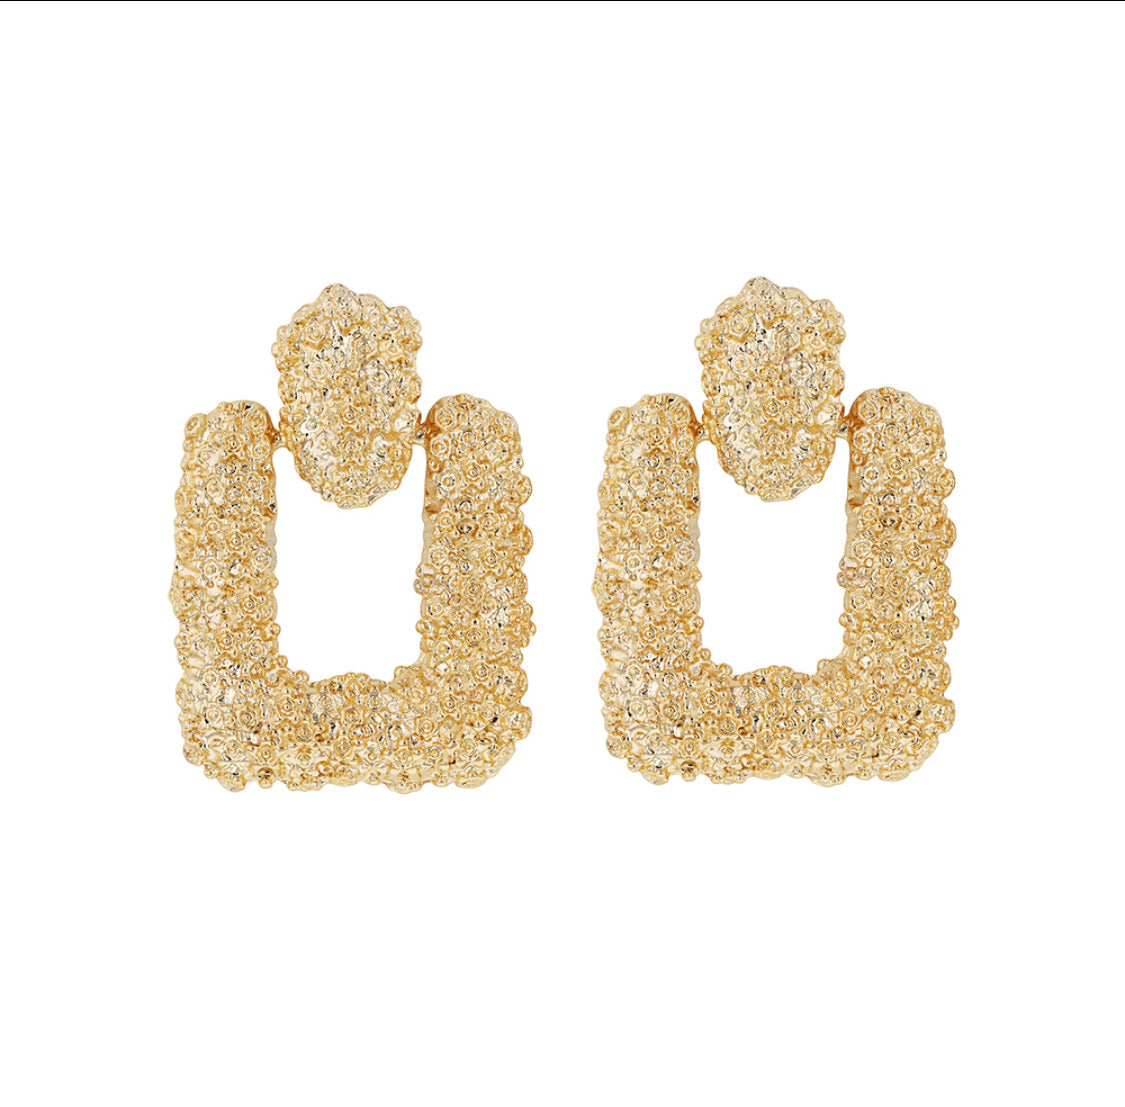 Jolie and Deen Matilda earrings